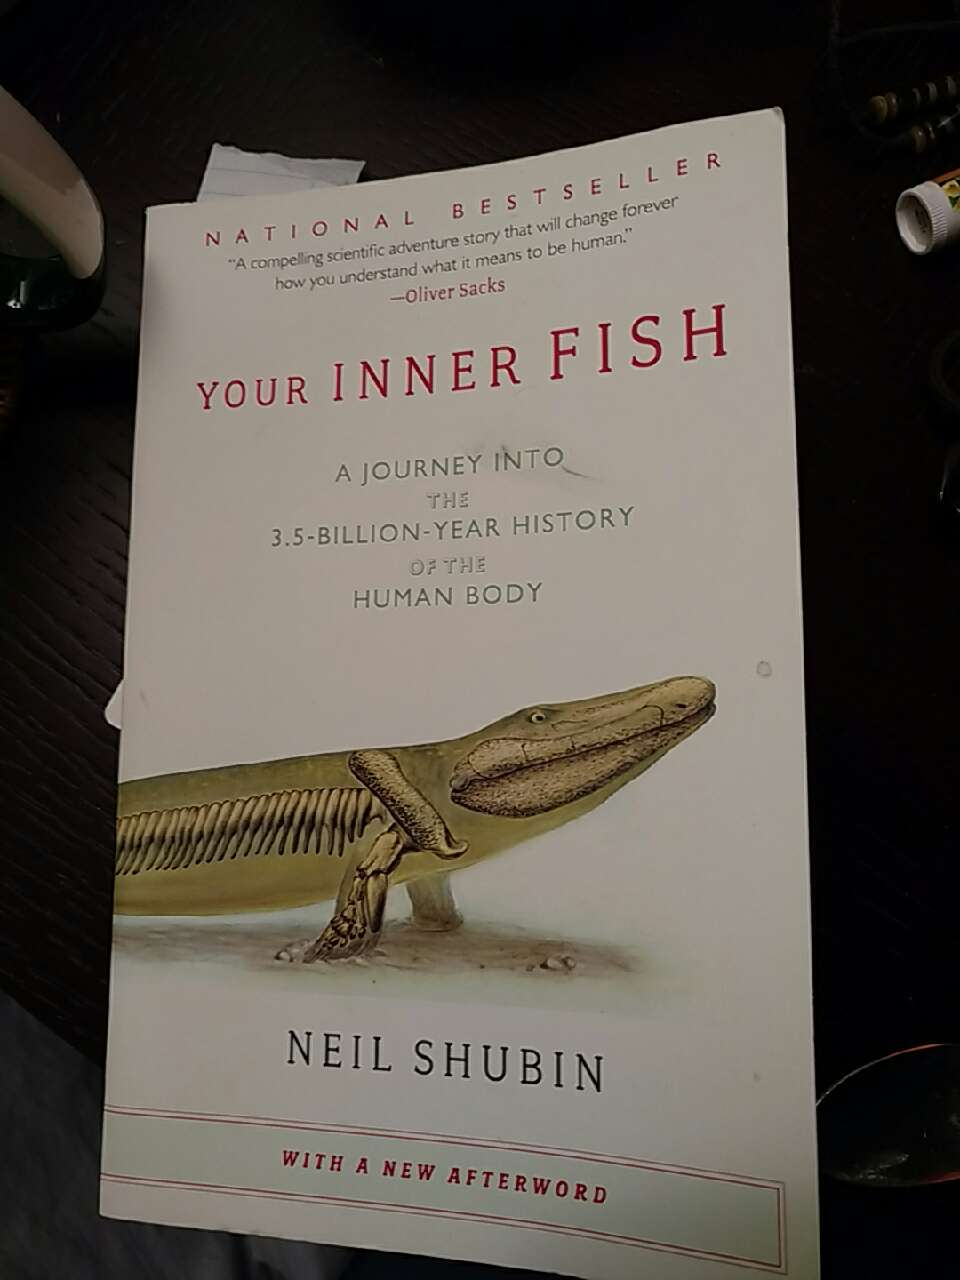 Letgo your inner fish by neil sh in hamilton square nj for Your inner fish book